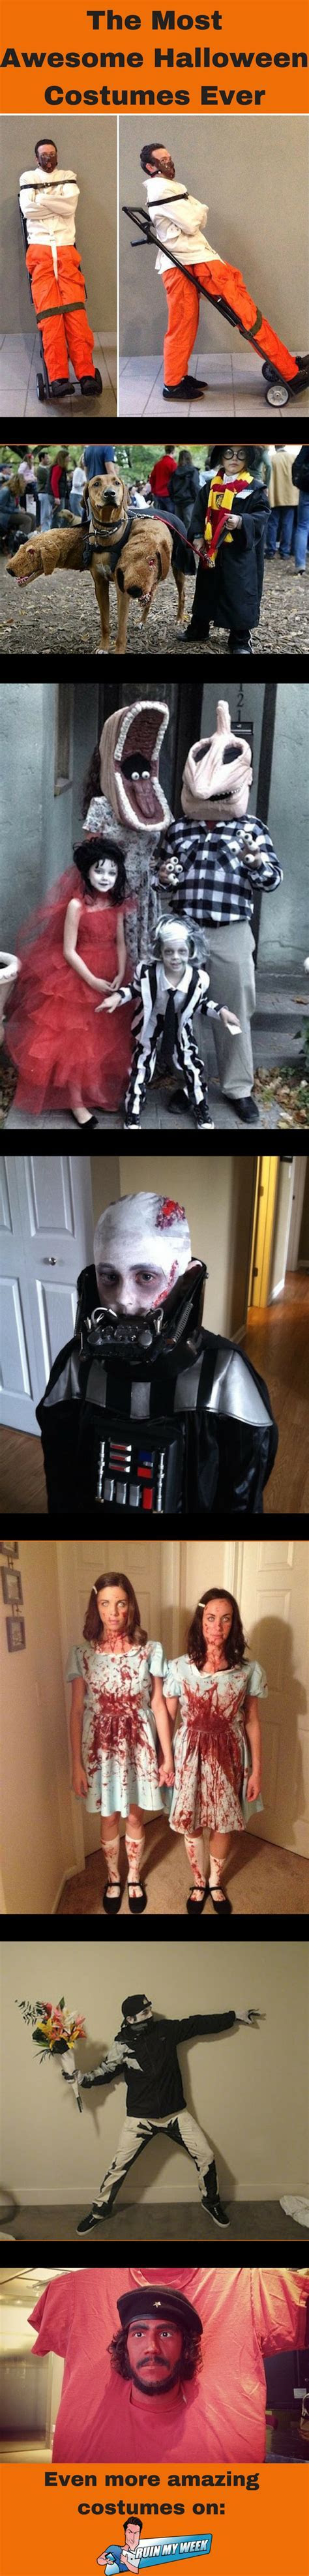 The Most Awesome Halloween Costumes Ever All In One